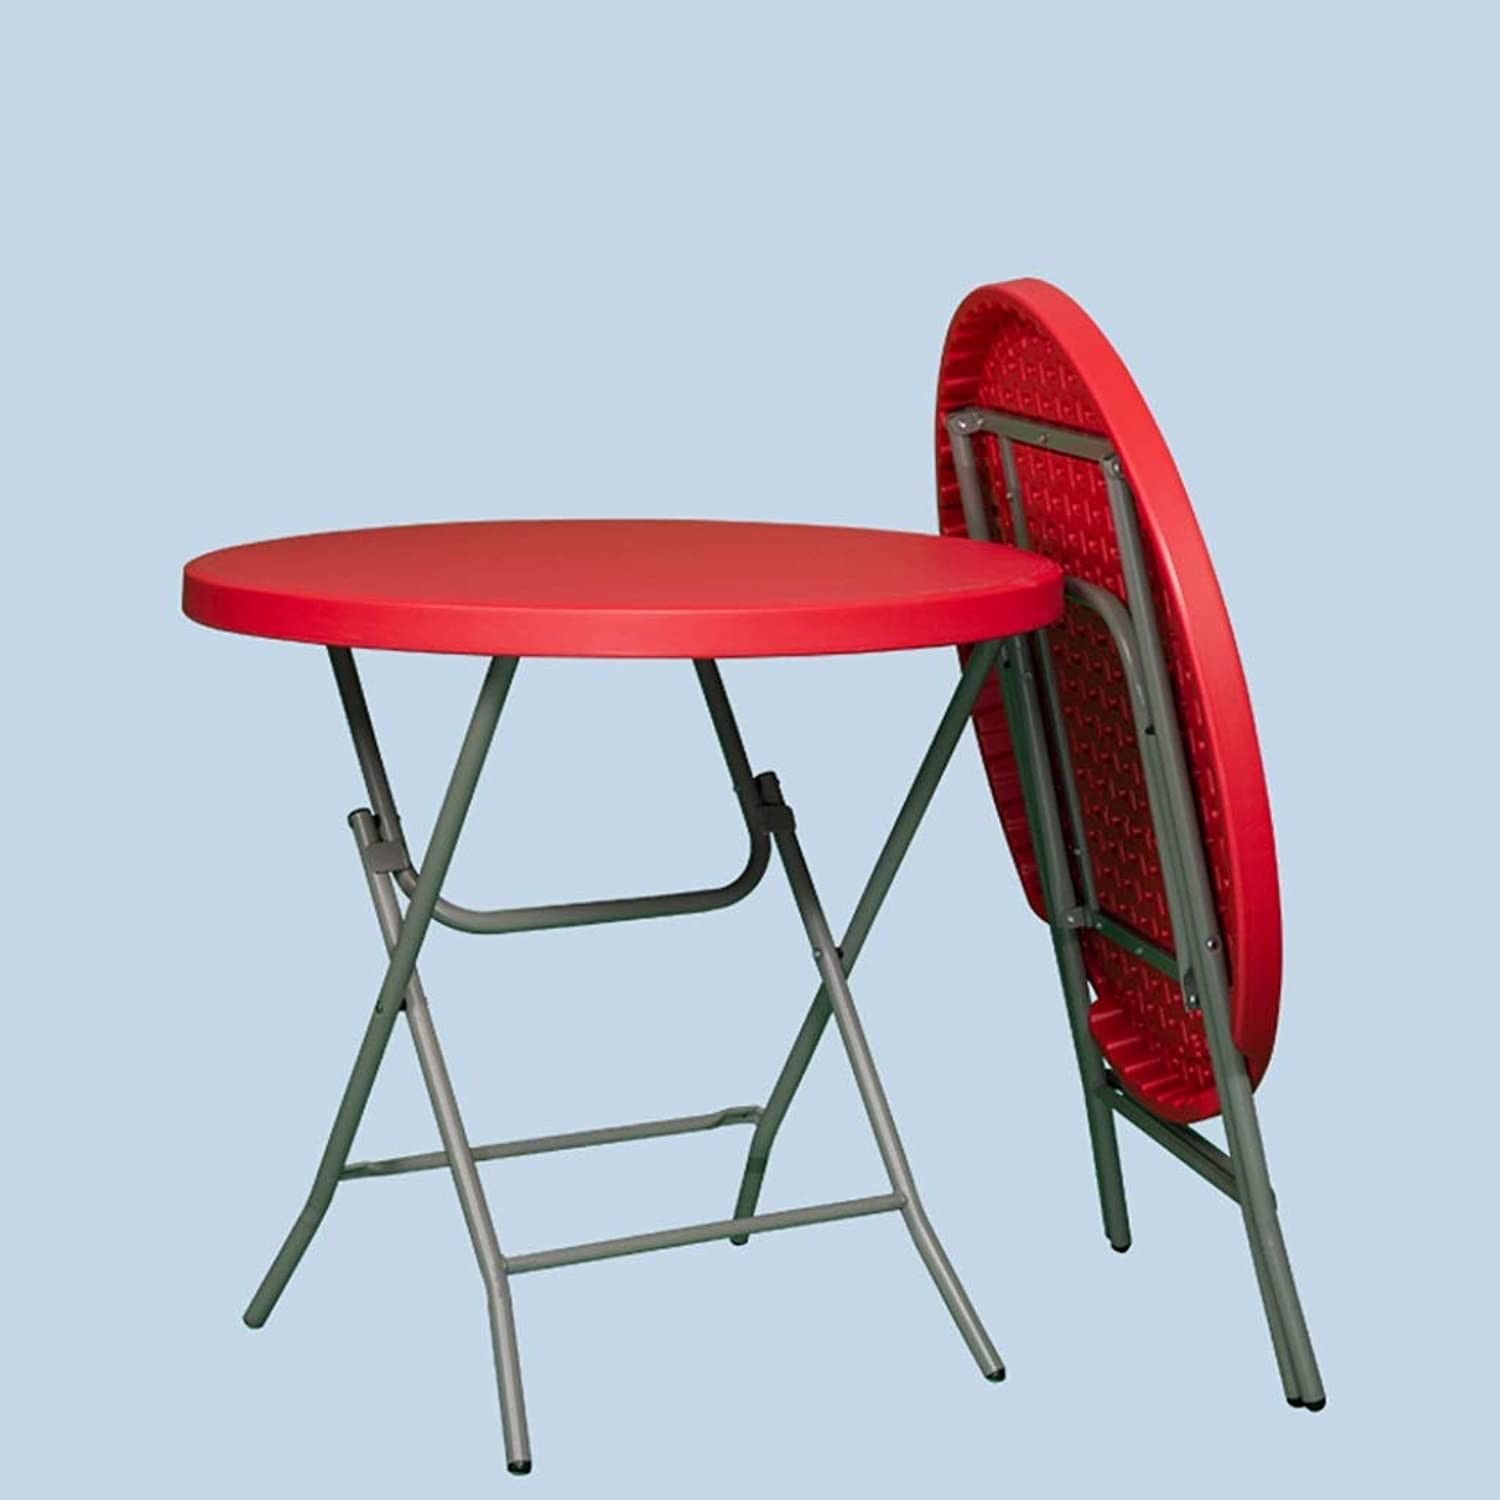 JSFQ Folding, Simple Foldable Small Round Table Small Folding Table for Household Use Small Table for Dormitory   2-4 People Folding Table (color   Red)